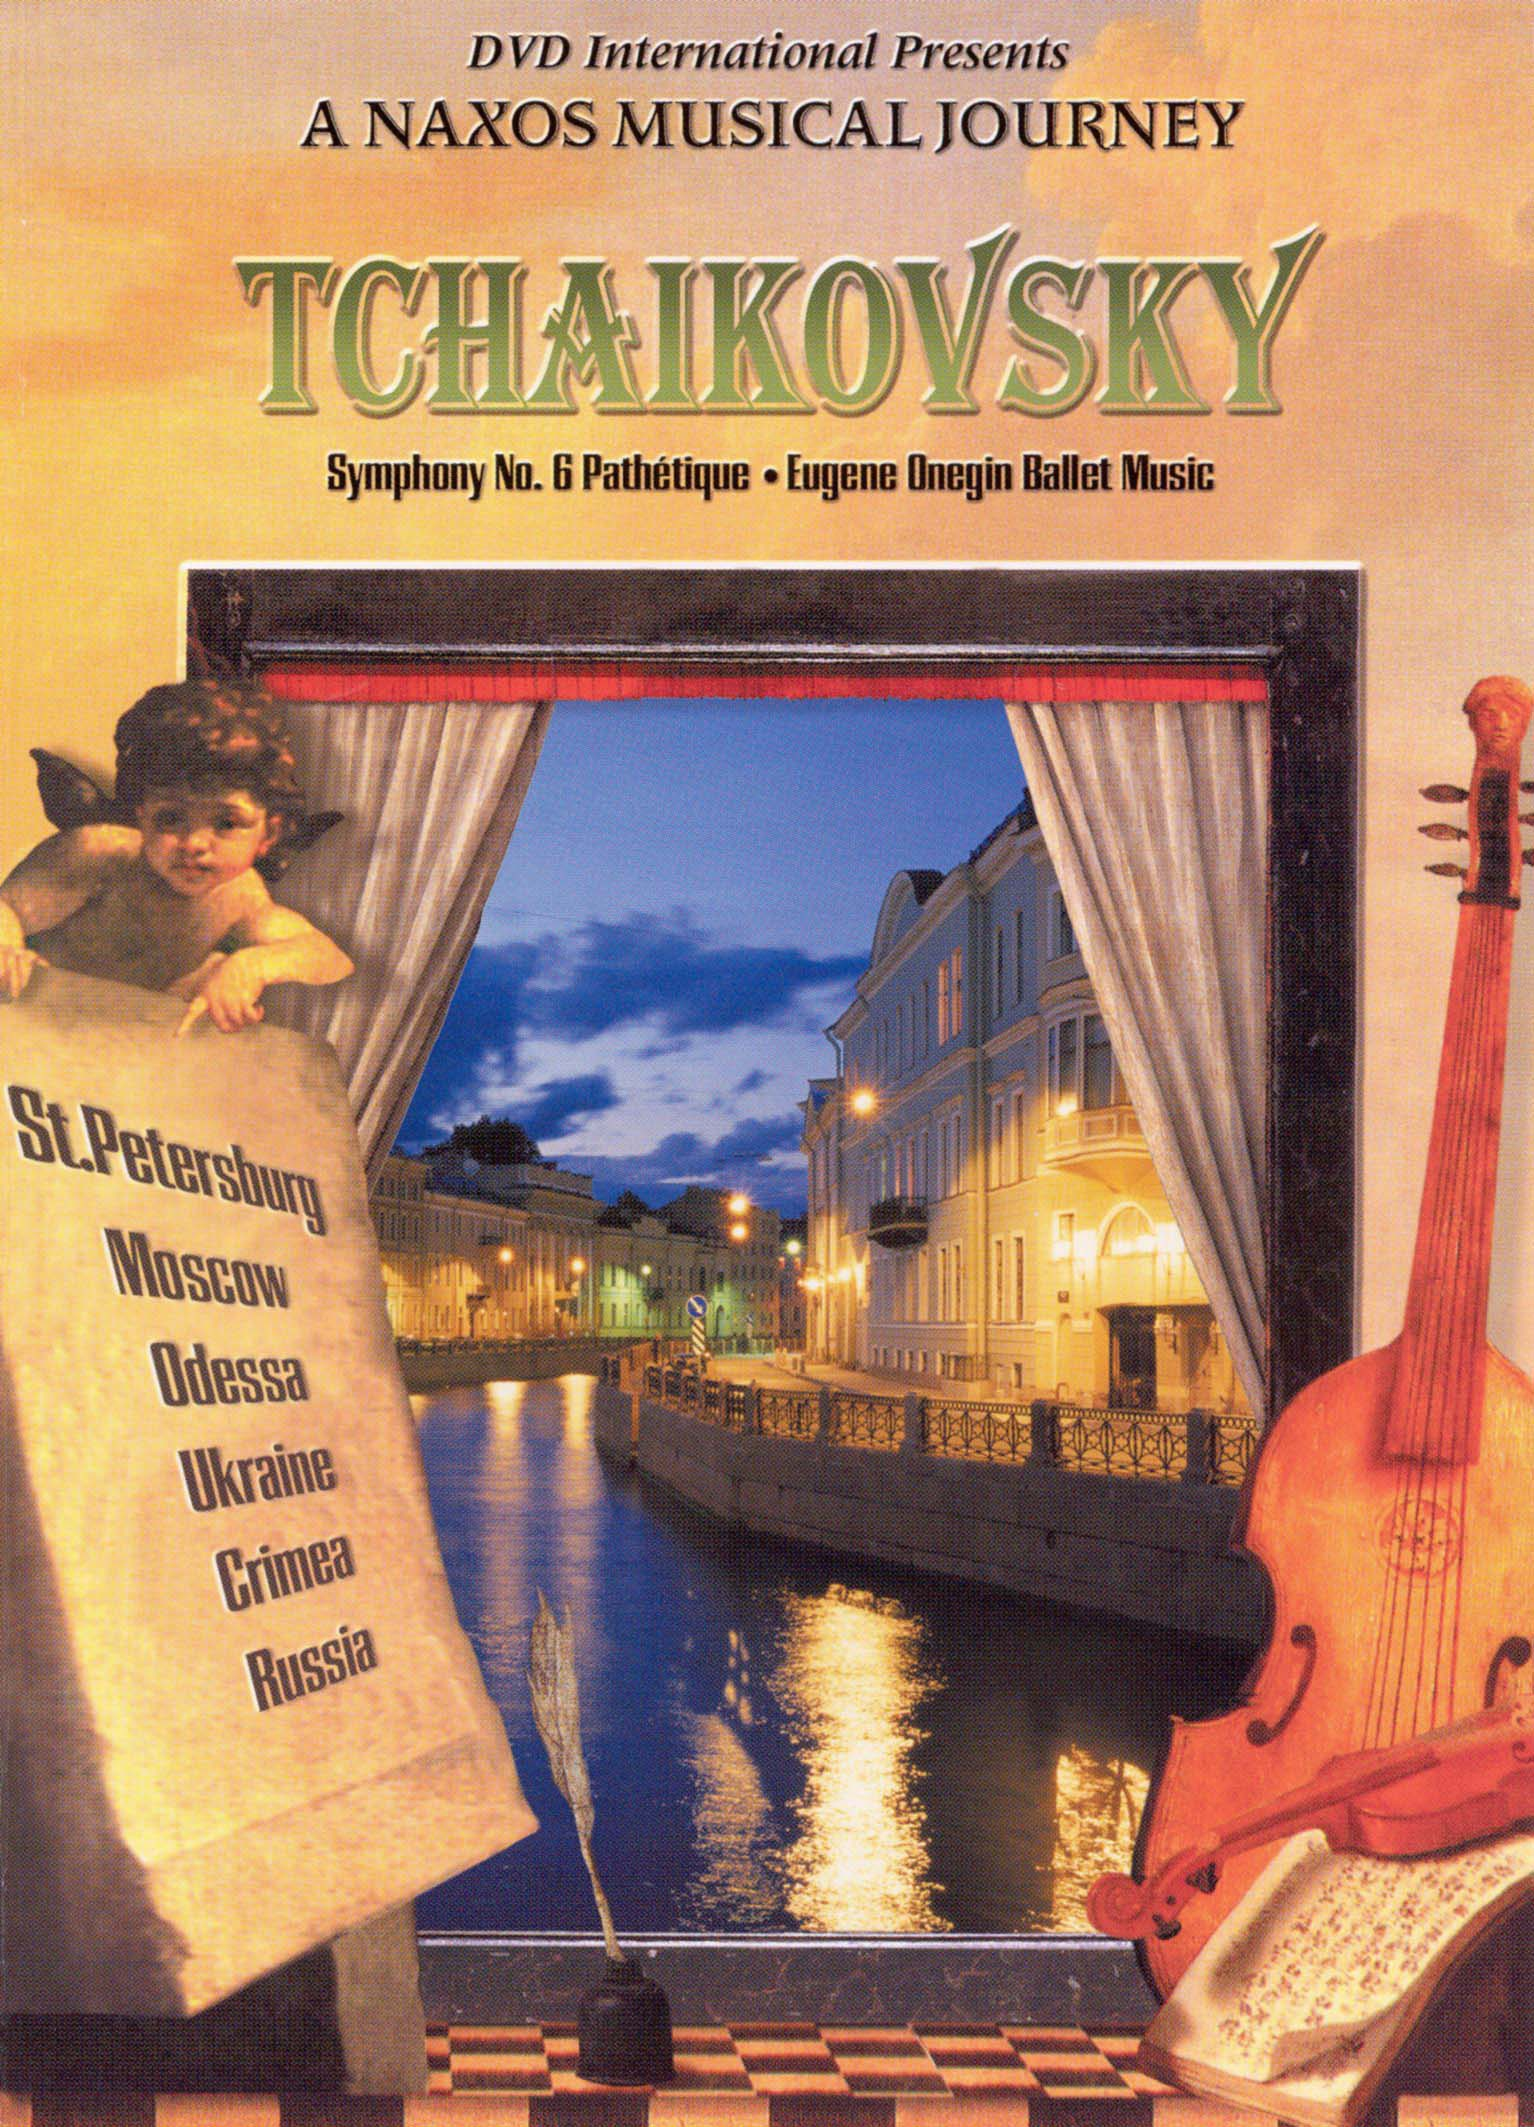 A Naxos Musical Journey: Tchaikovsky - Symphony No. 6 Pathetique/Eugene Onegin Ballet Music